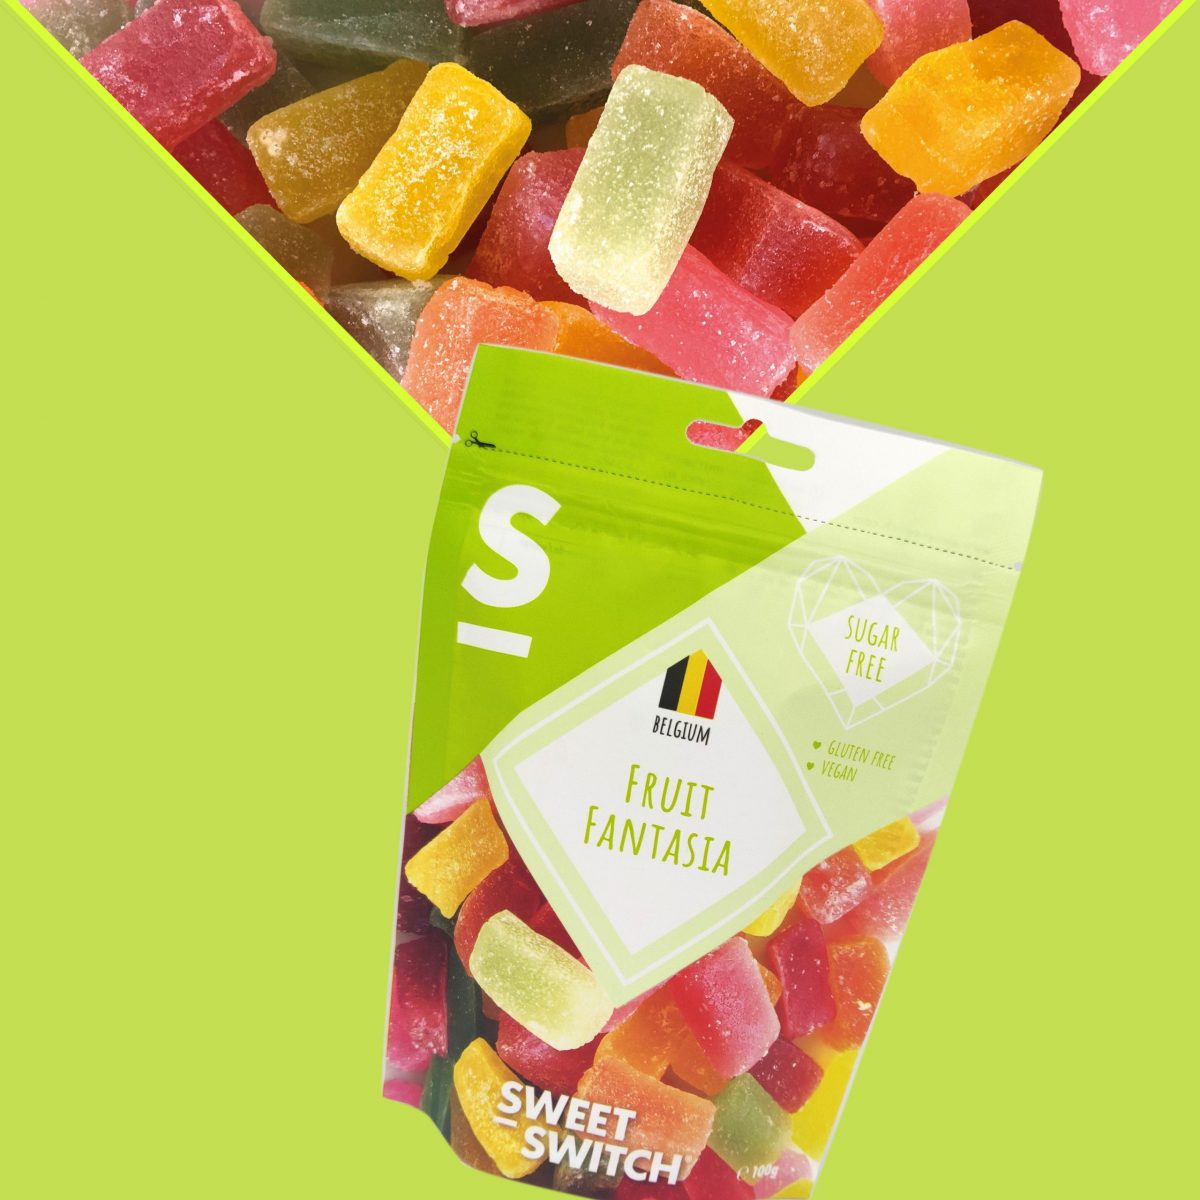 sugar free confectionery heaven Fruit Fantasia SWEET-SWITCH